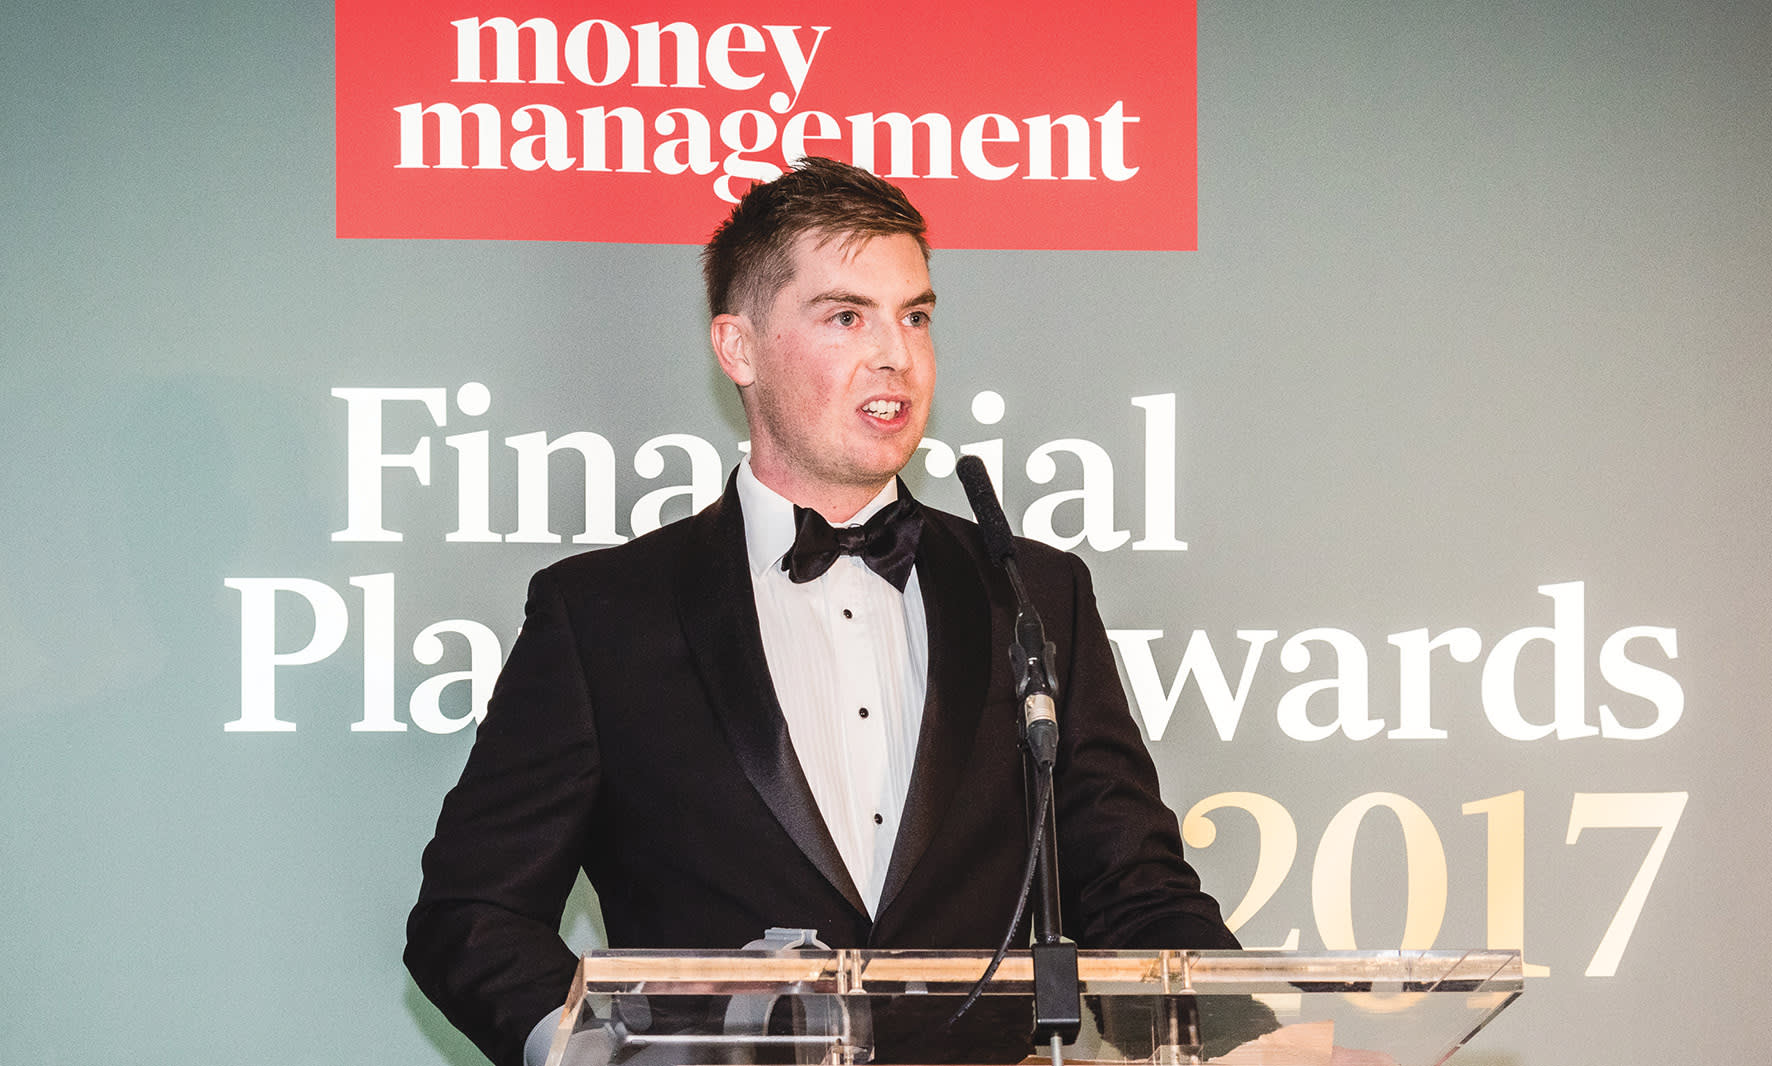 Financial Planner Awards 2018 - deadline extended